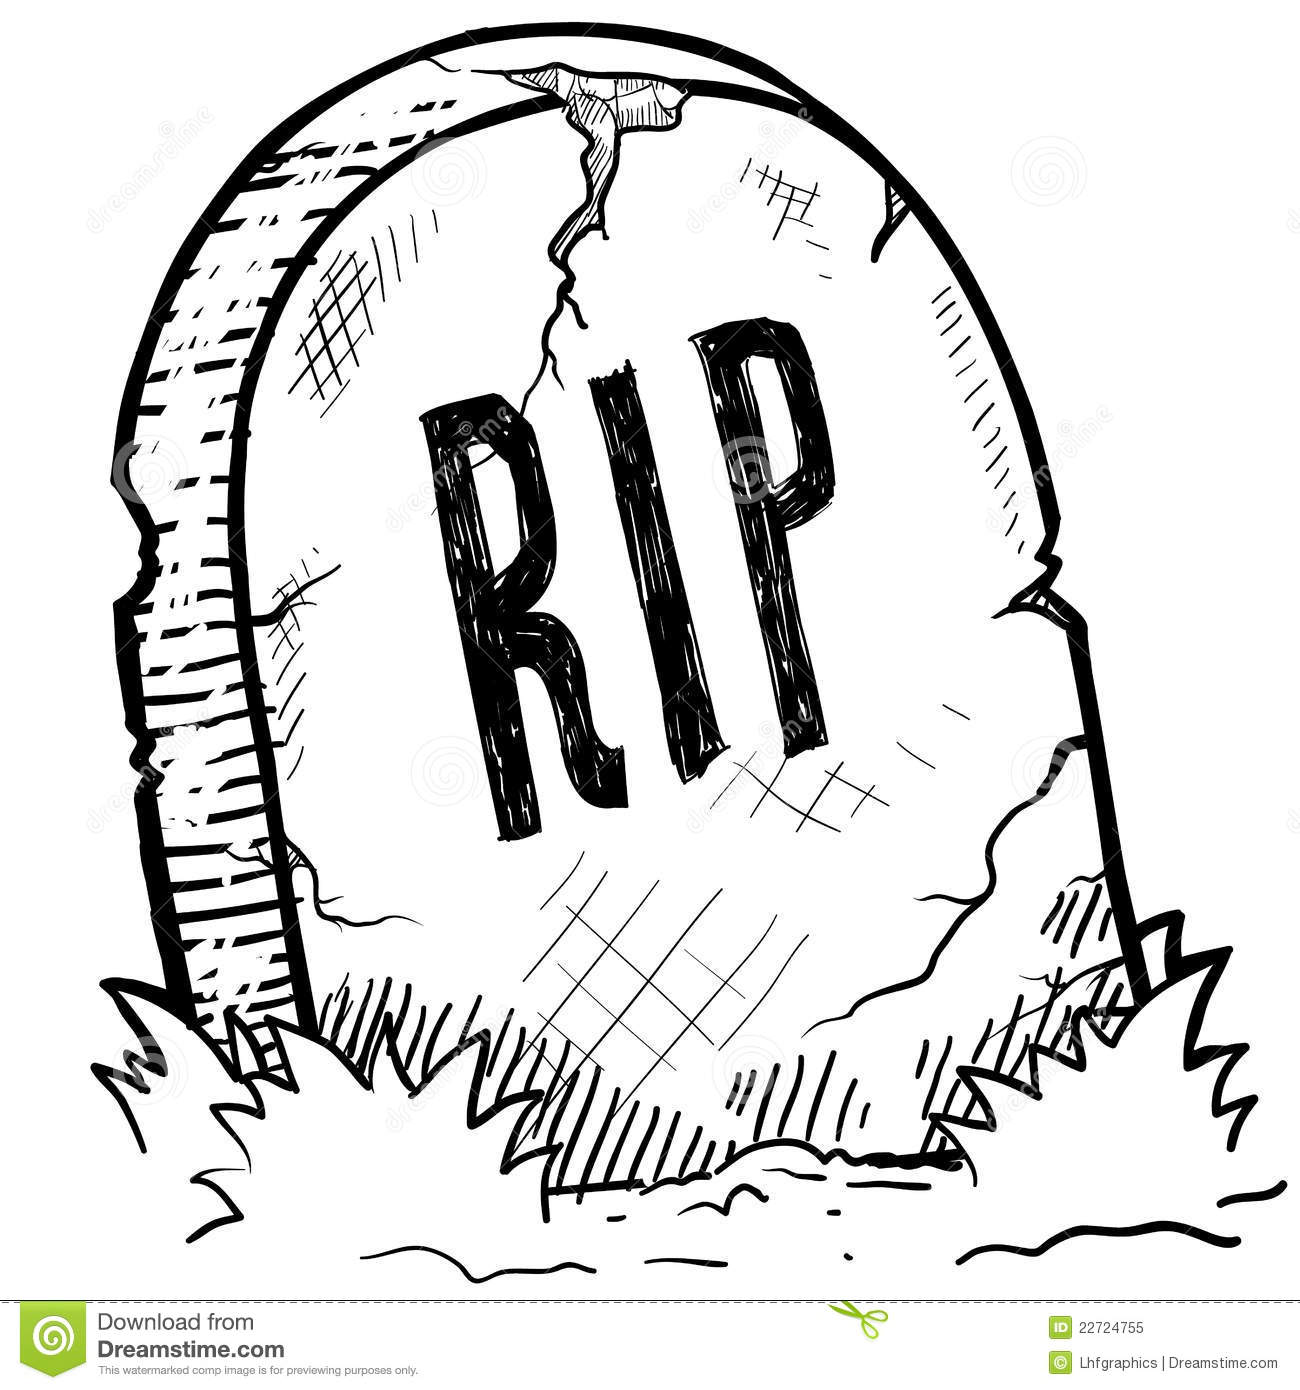 rest in peace grave sketch stock vector illustration of 50th Birthday Tombstone Clip Art Animated Cartoon Tombstones